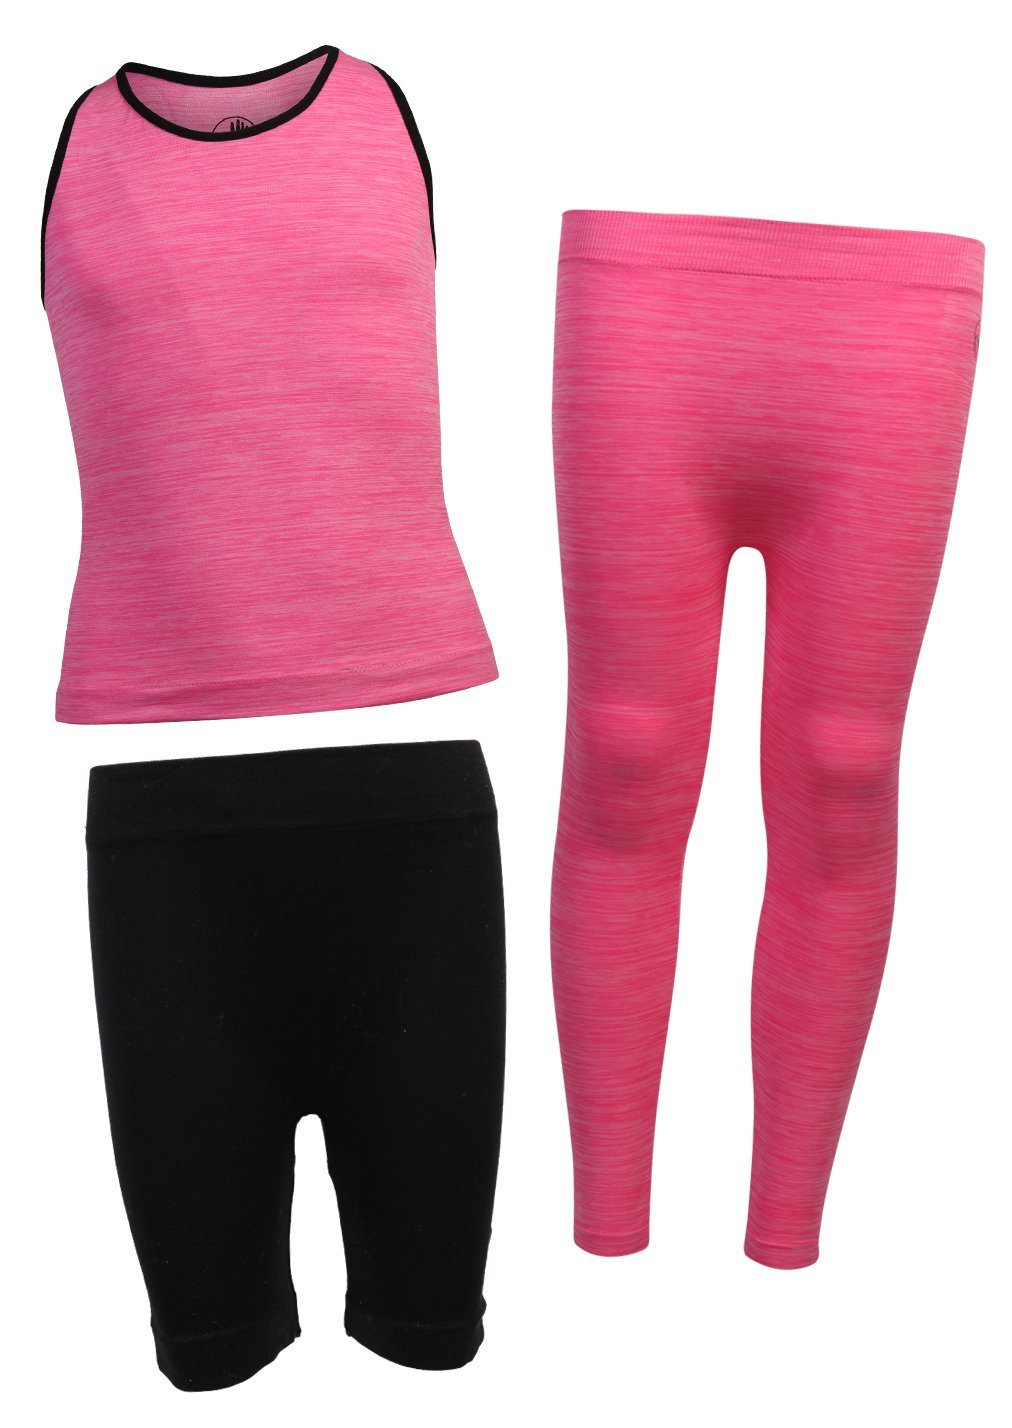 Body Glove Girls 3 Piece Athletic Shorts, Legging and Tank Top Sets product image